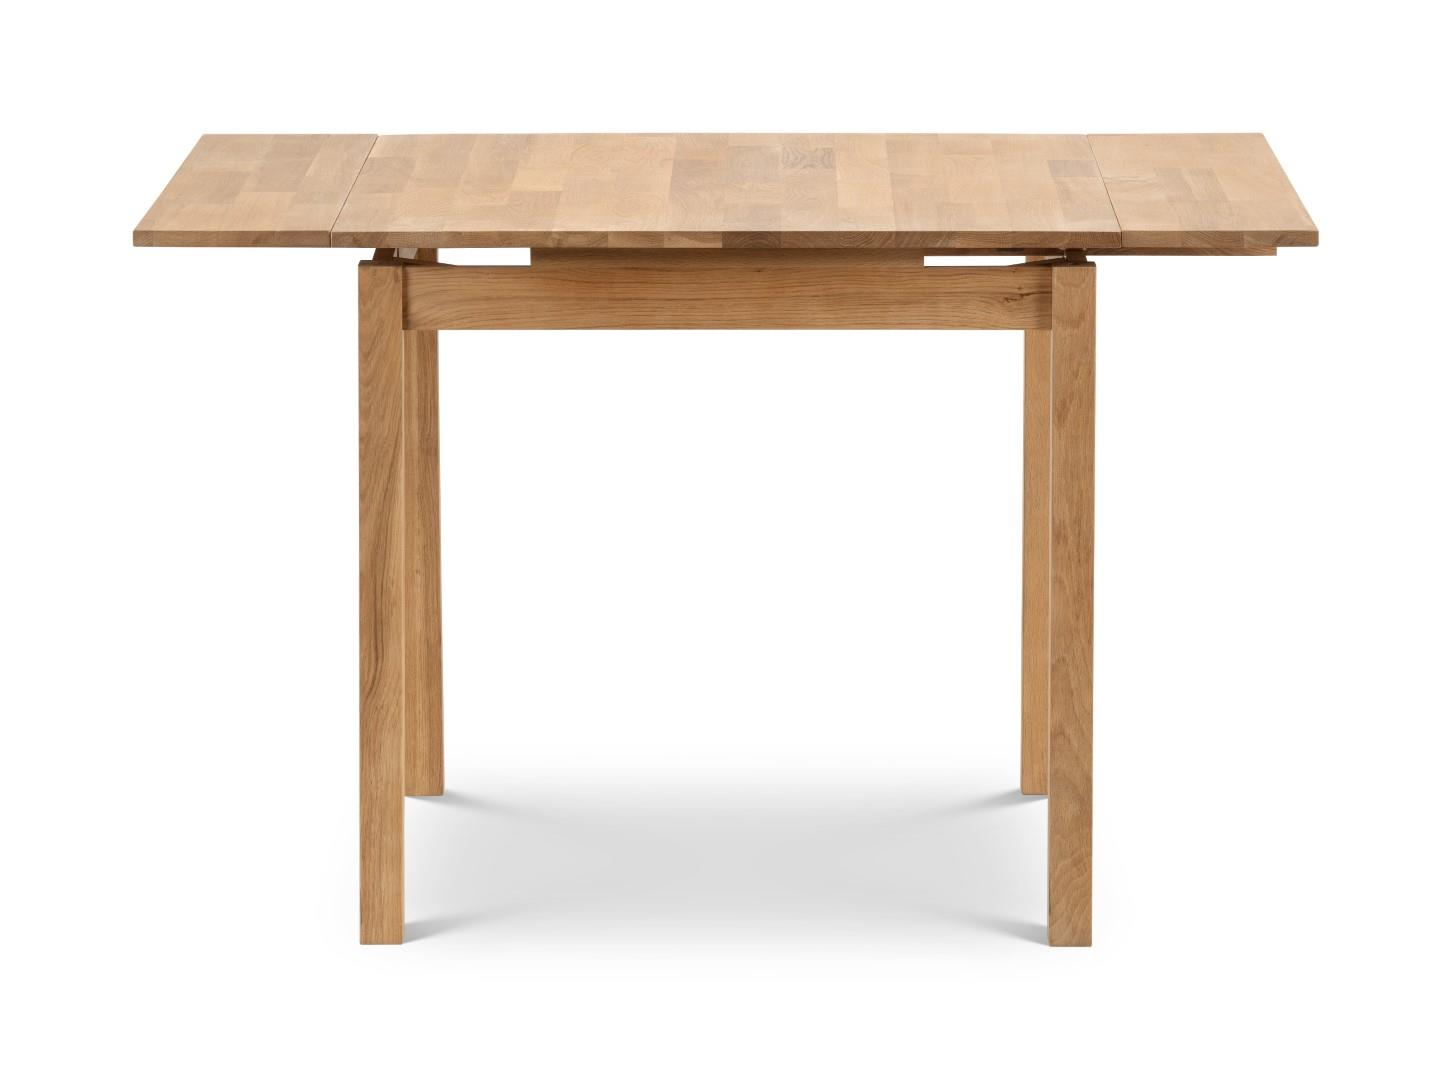 Julain Bowen Coxmoor Solid Oak Square Extending Dining Kitchen Table Draw Leaf